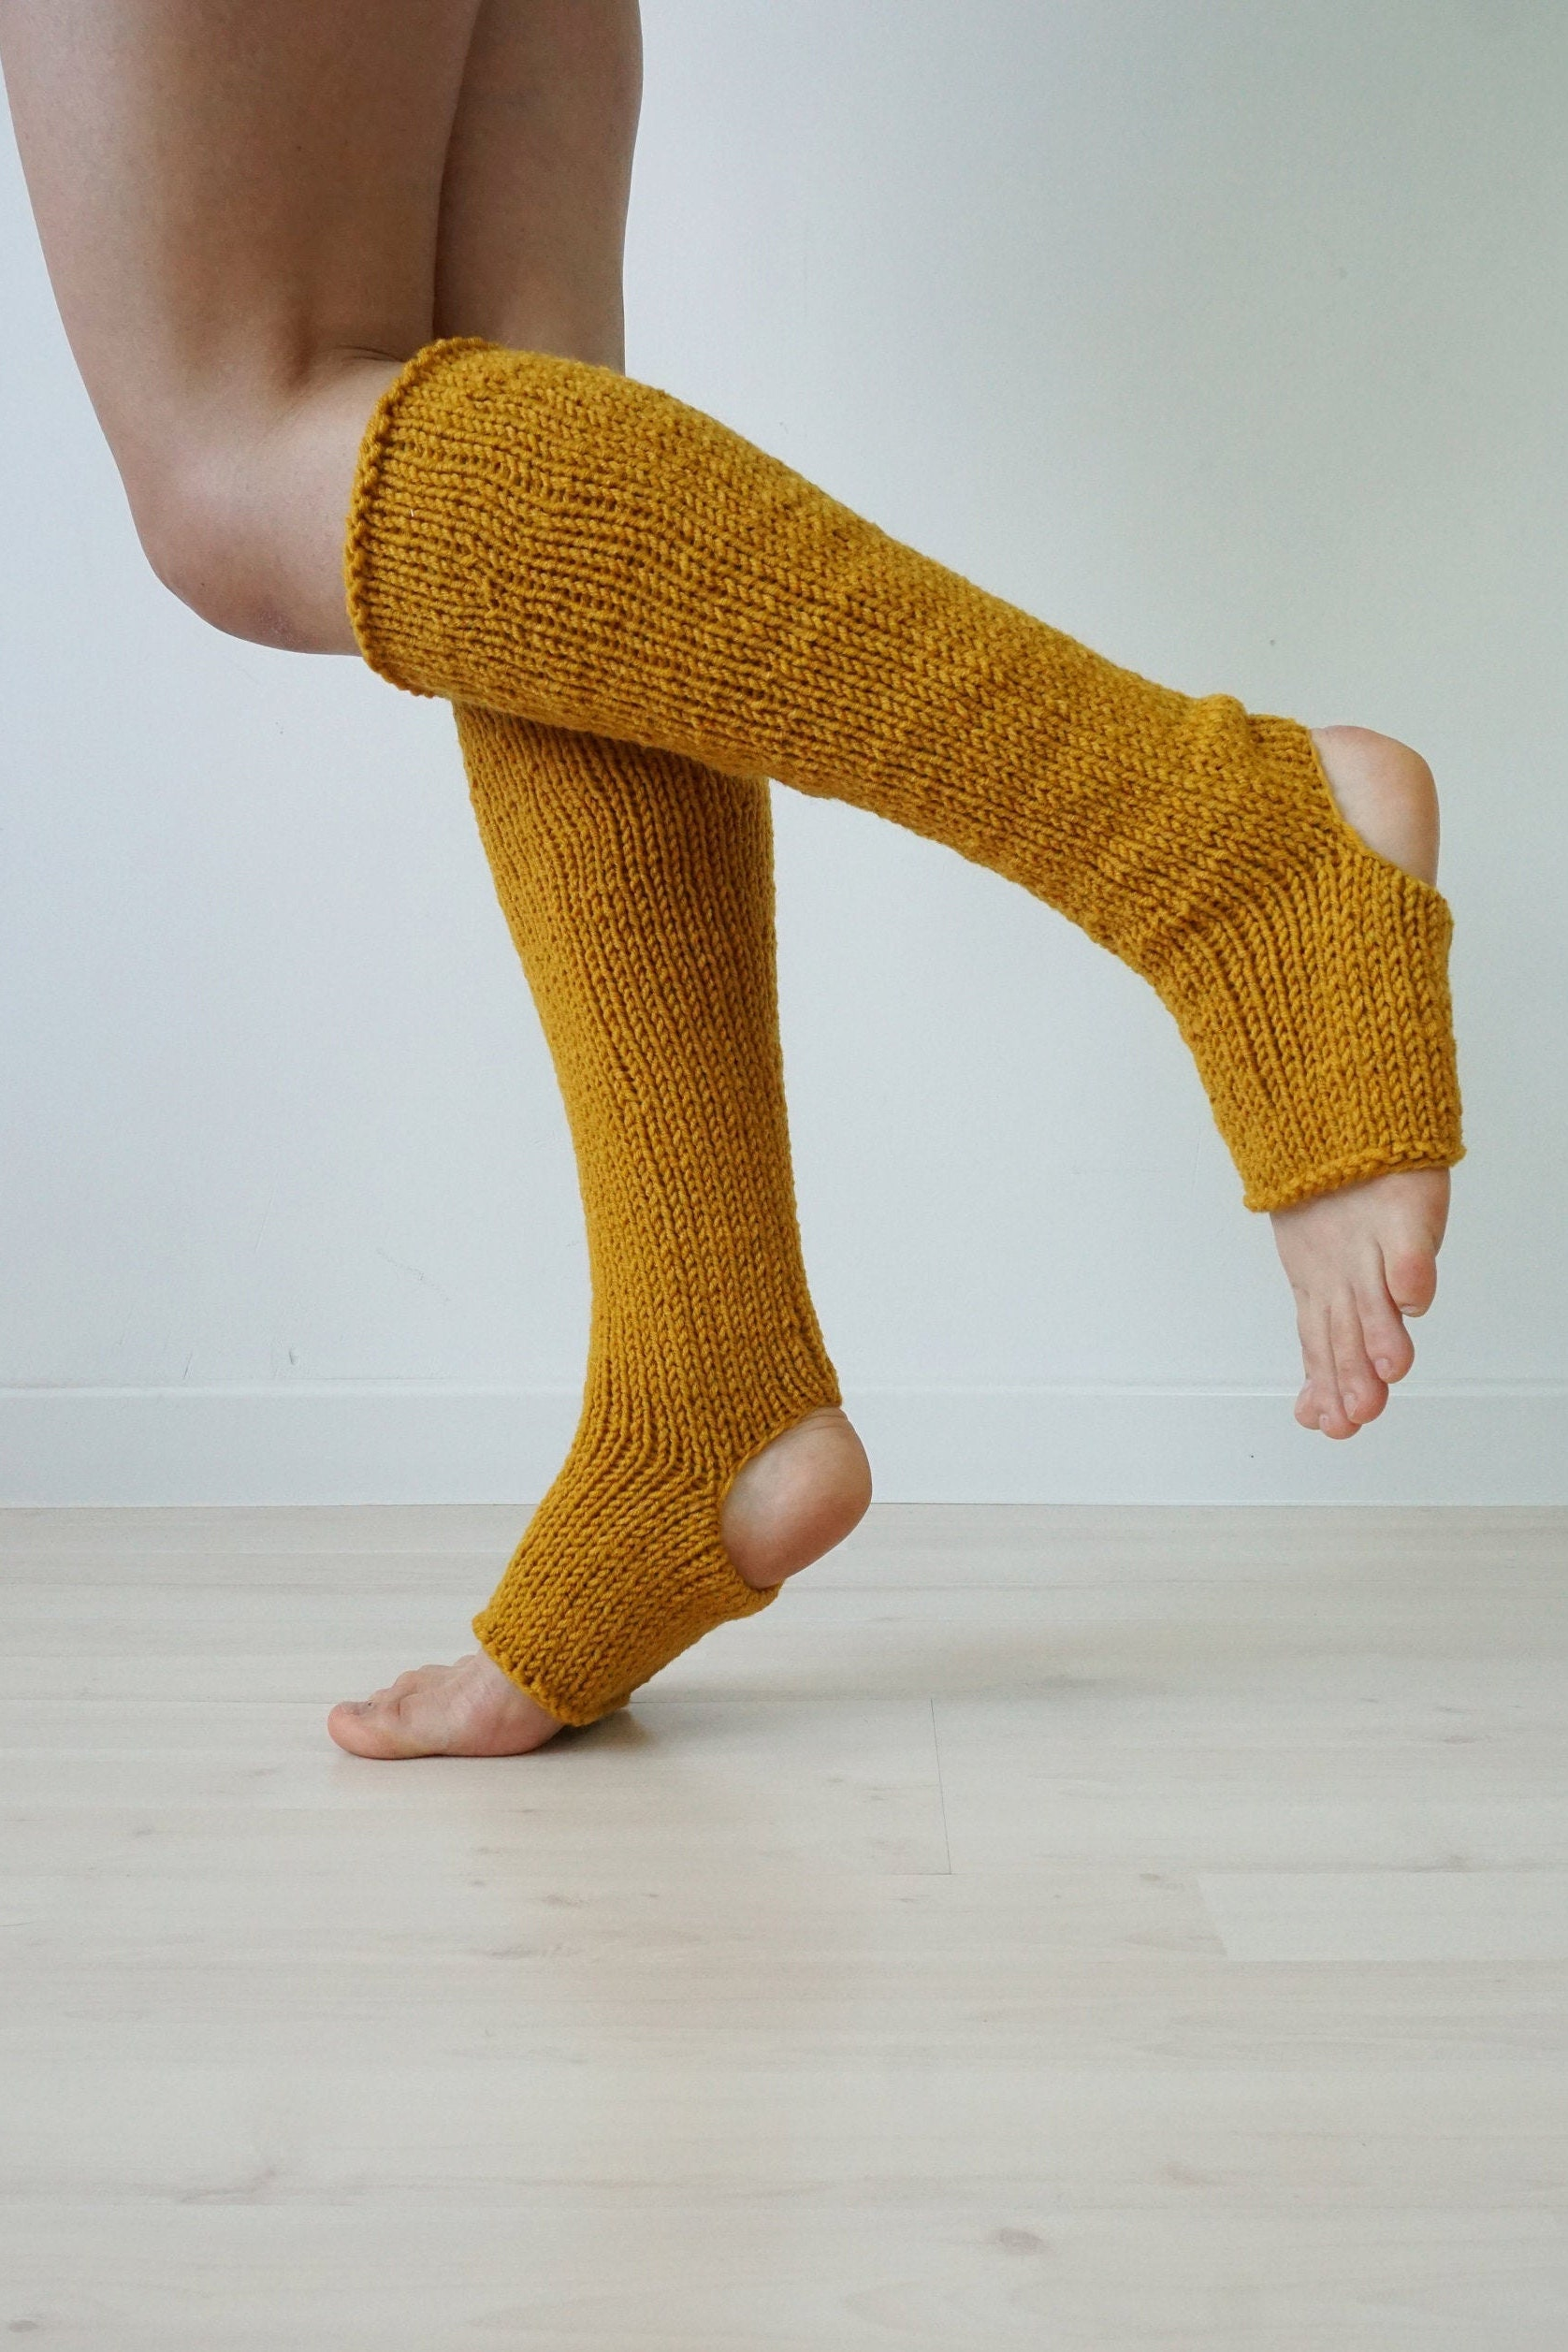 Spats, Gaiters, Puttees – Vintage Shoes Covers Yoga Socks, Mustard Leg Warmers, Home Accessories, Knee High, Gift, Spats, Knit Wear, Gift $46.64 AT vintagedancer.com